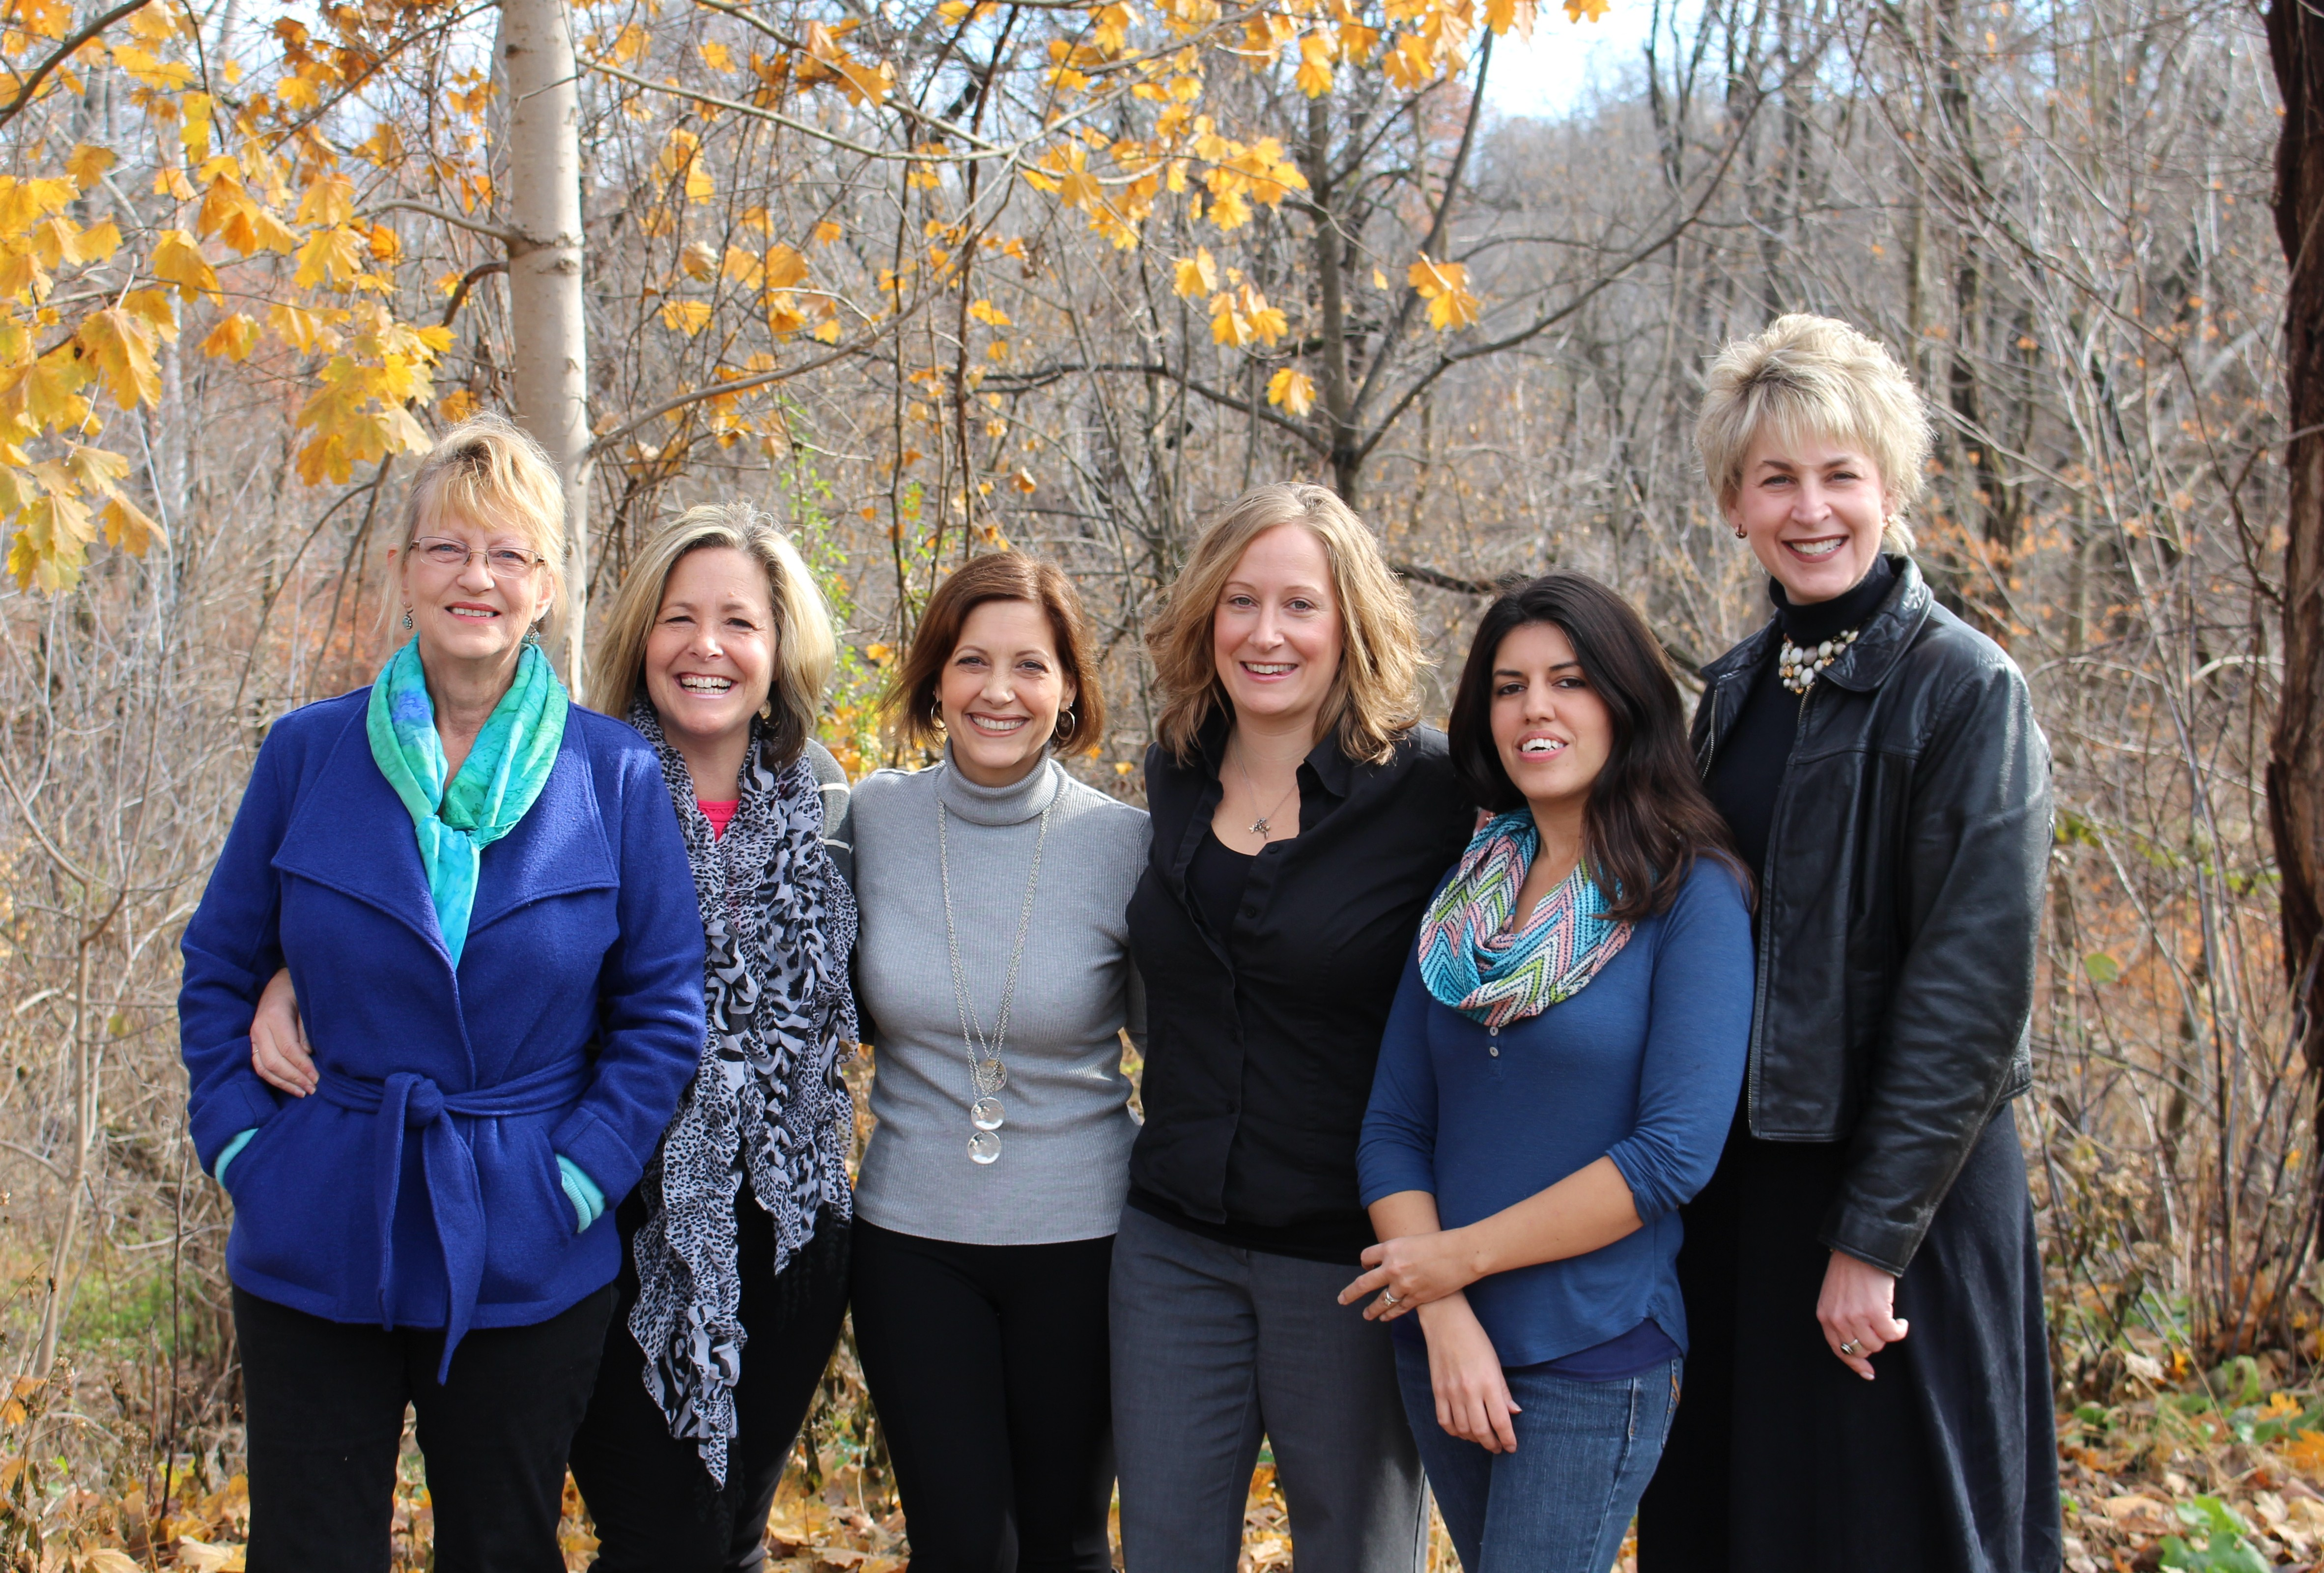 Meet Our Recruiters & The Human Resources Team